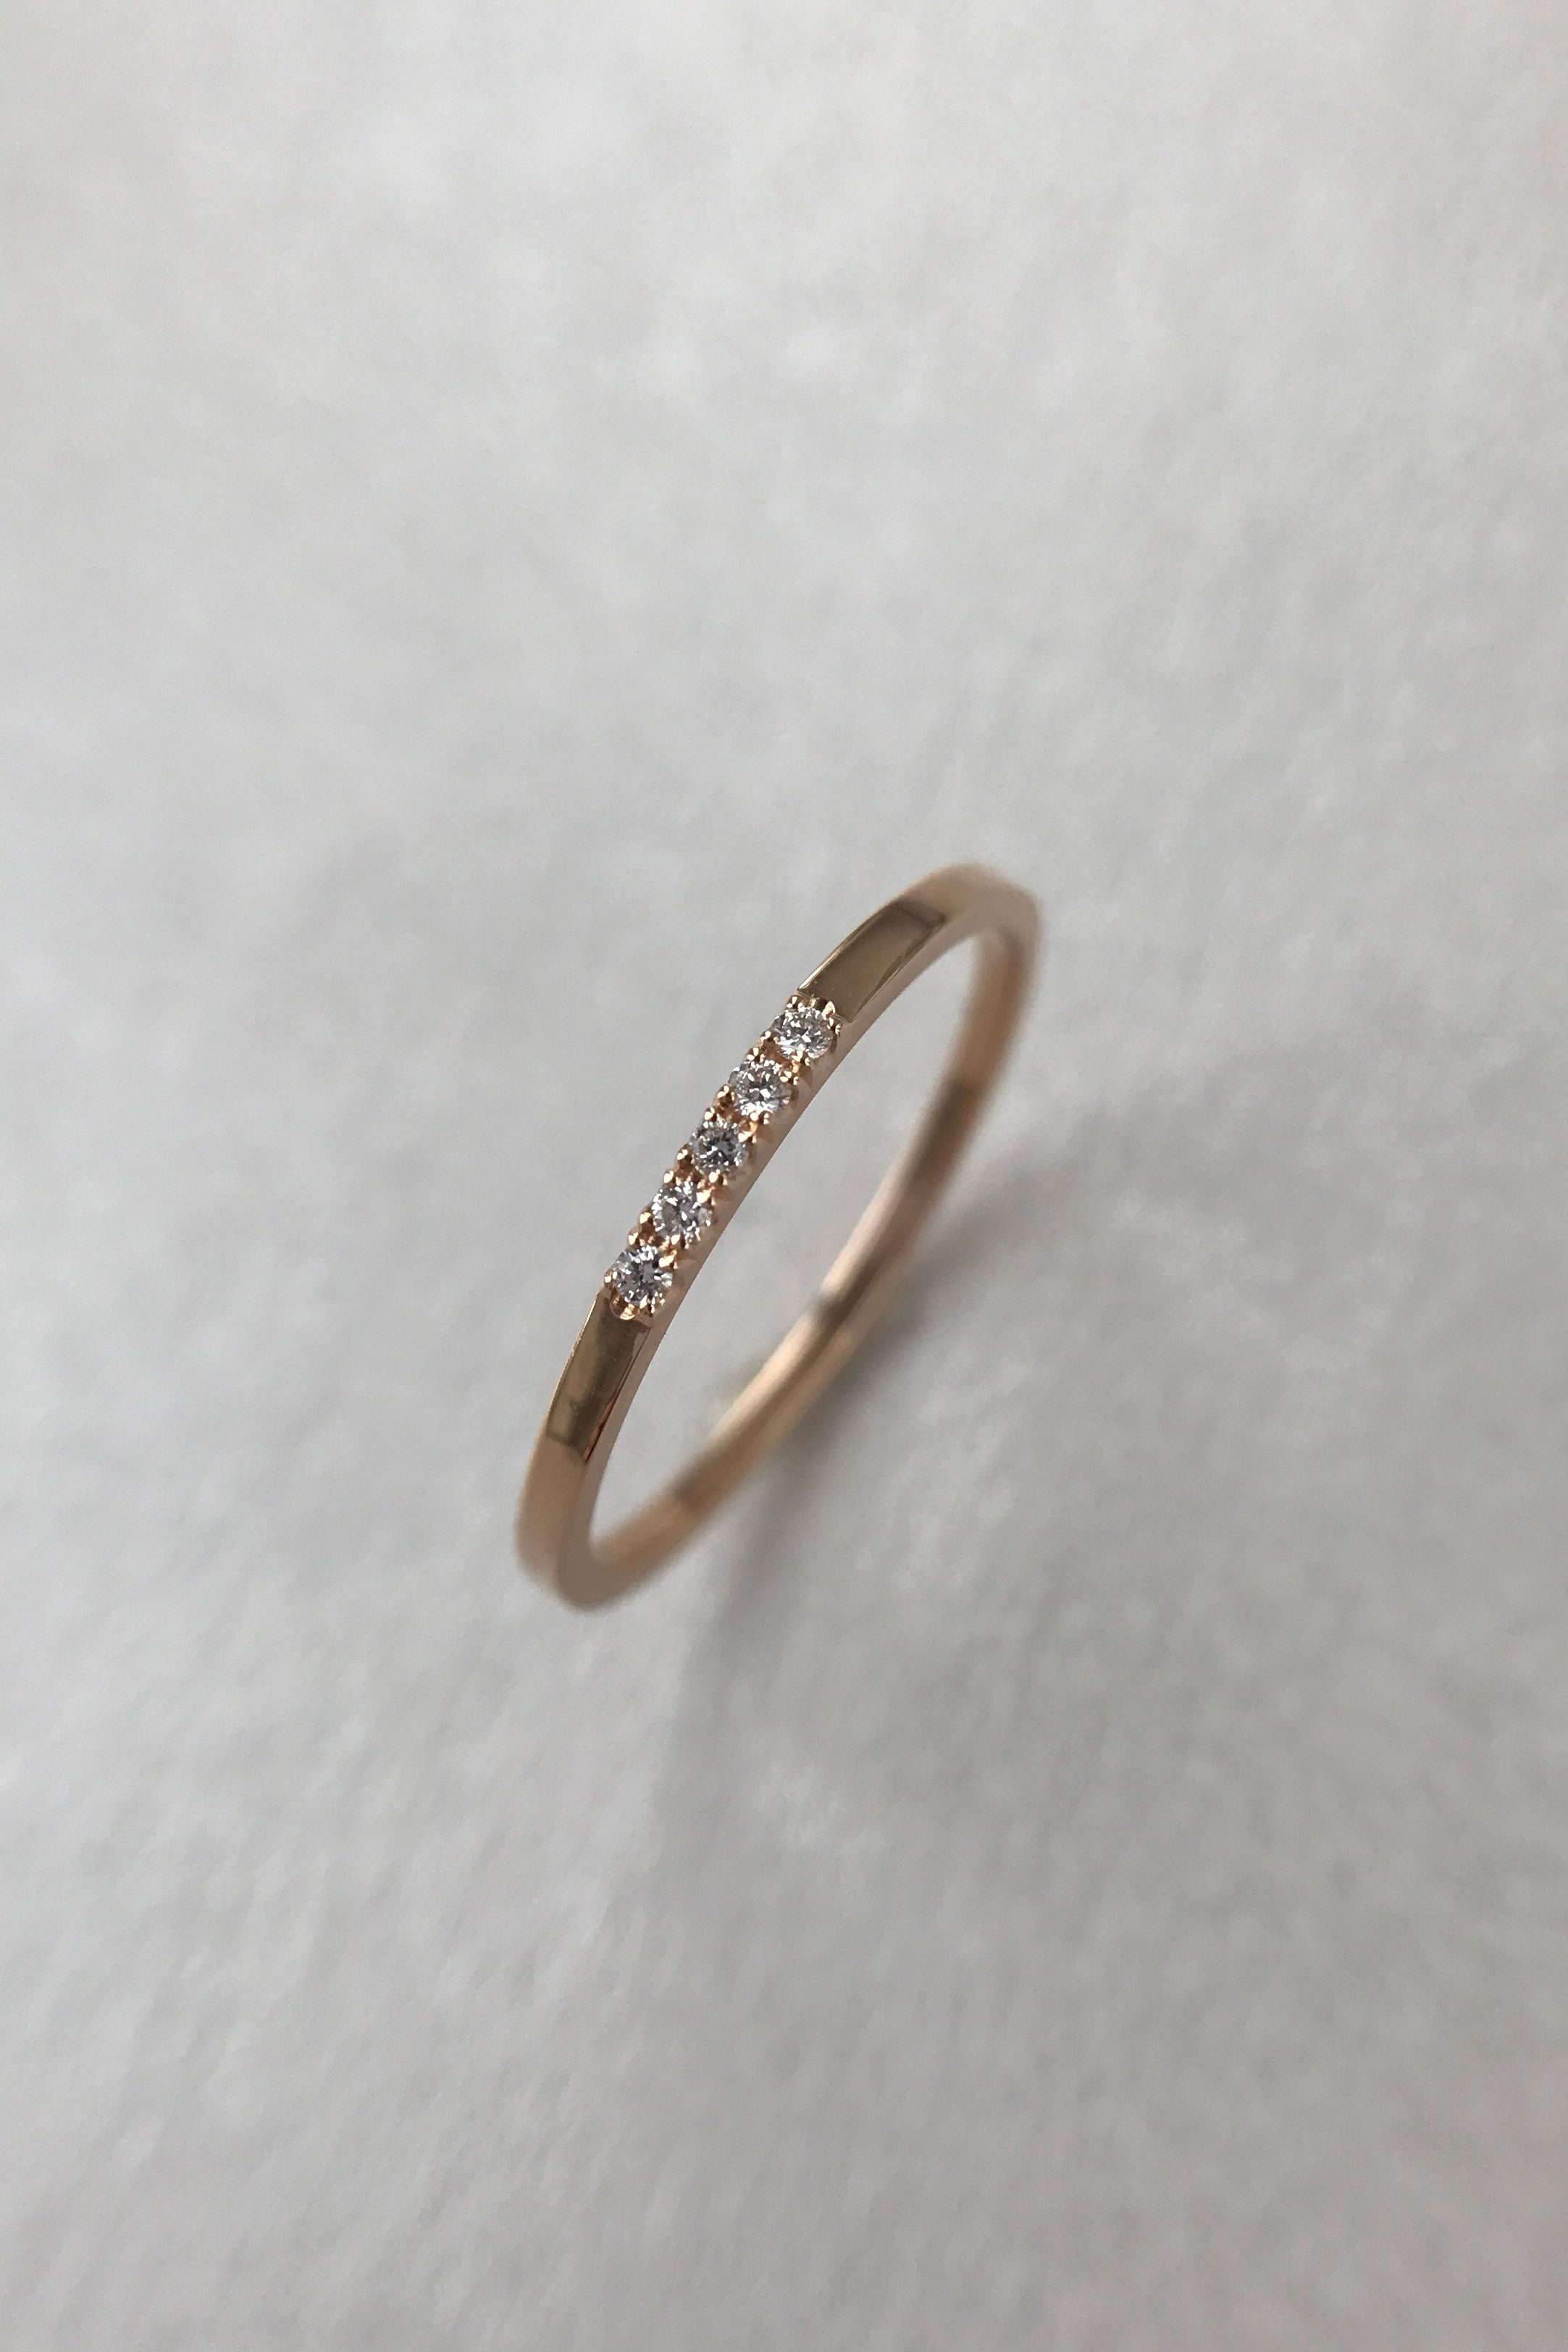 Rose Gold Wedding Band Women, 5 Stone Diamond Ring, Stacking With Newest Micropavé Diamond Narrow Wedding Bands (View 22 of 25)